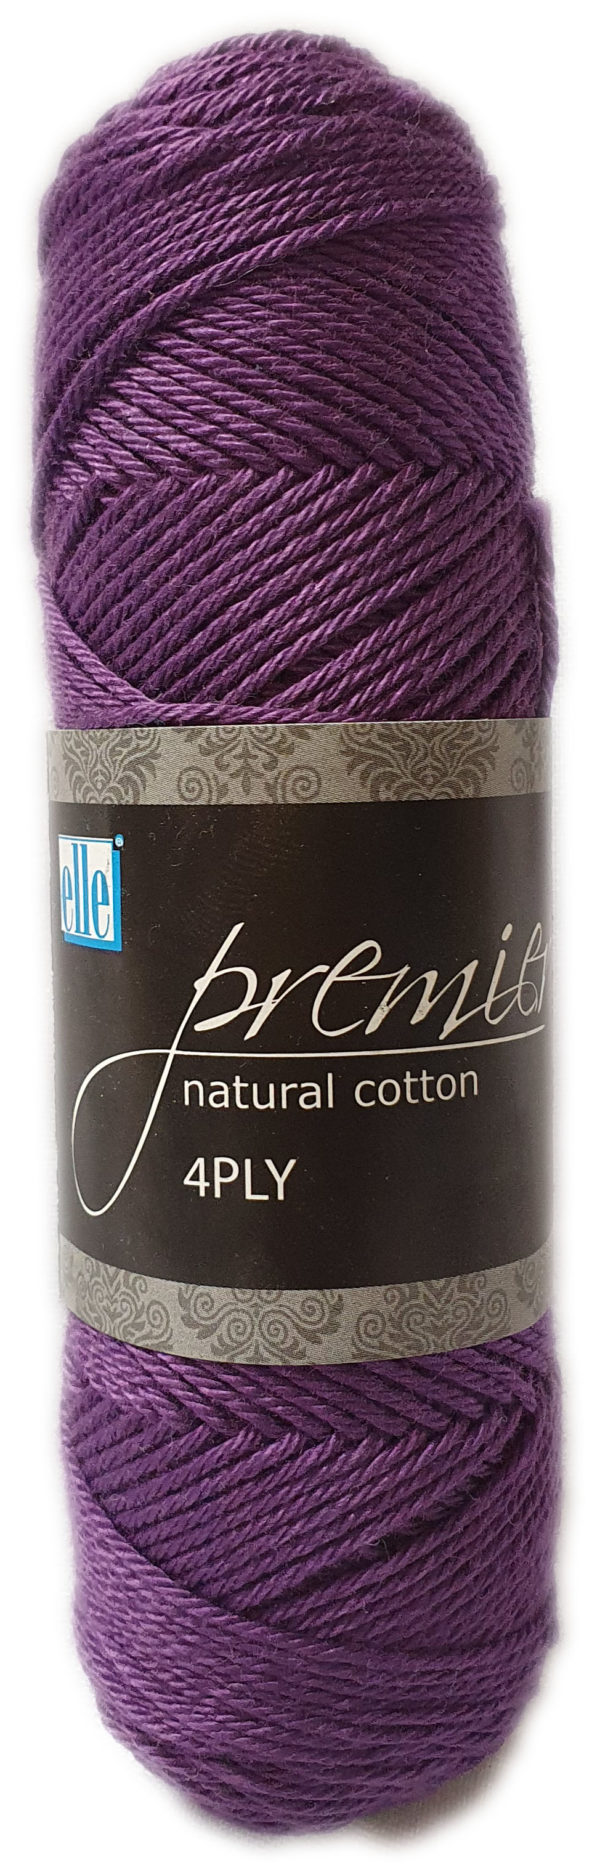 PREMIER NATURAL COTTON 4 PLY 50g-COL.064 MULBERRY 1